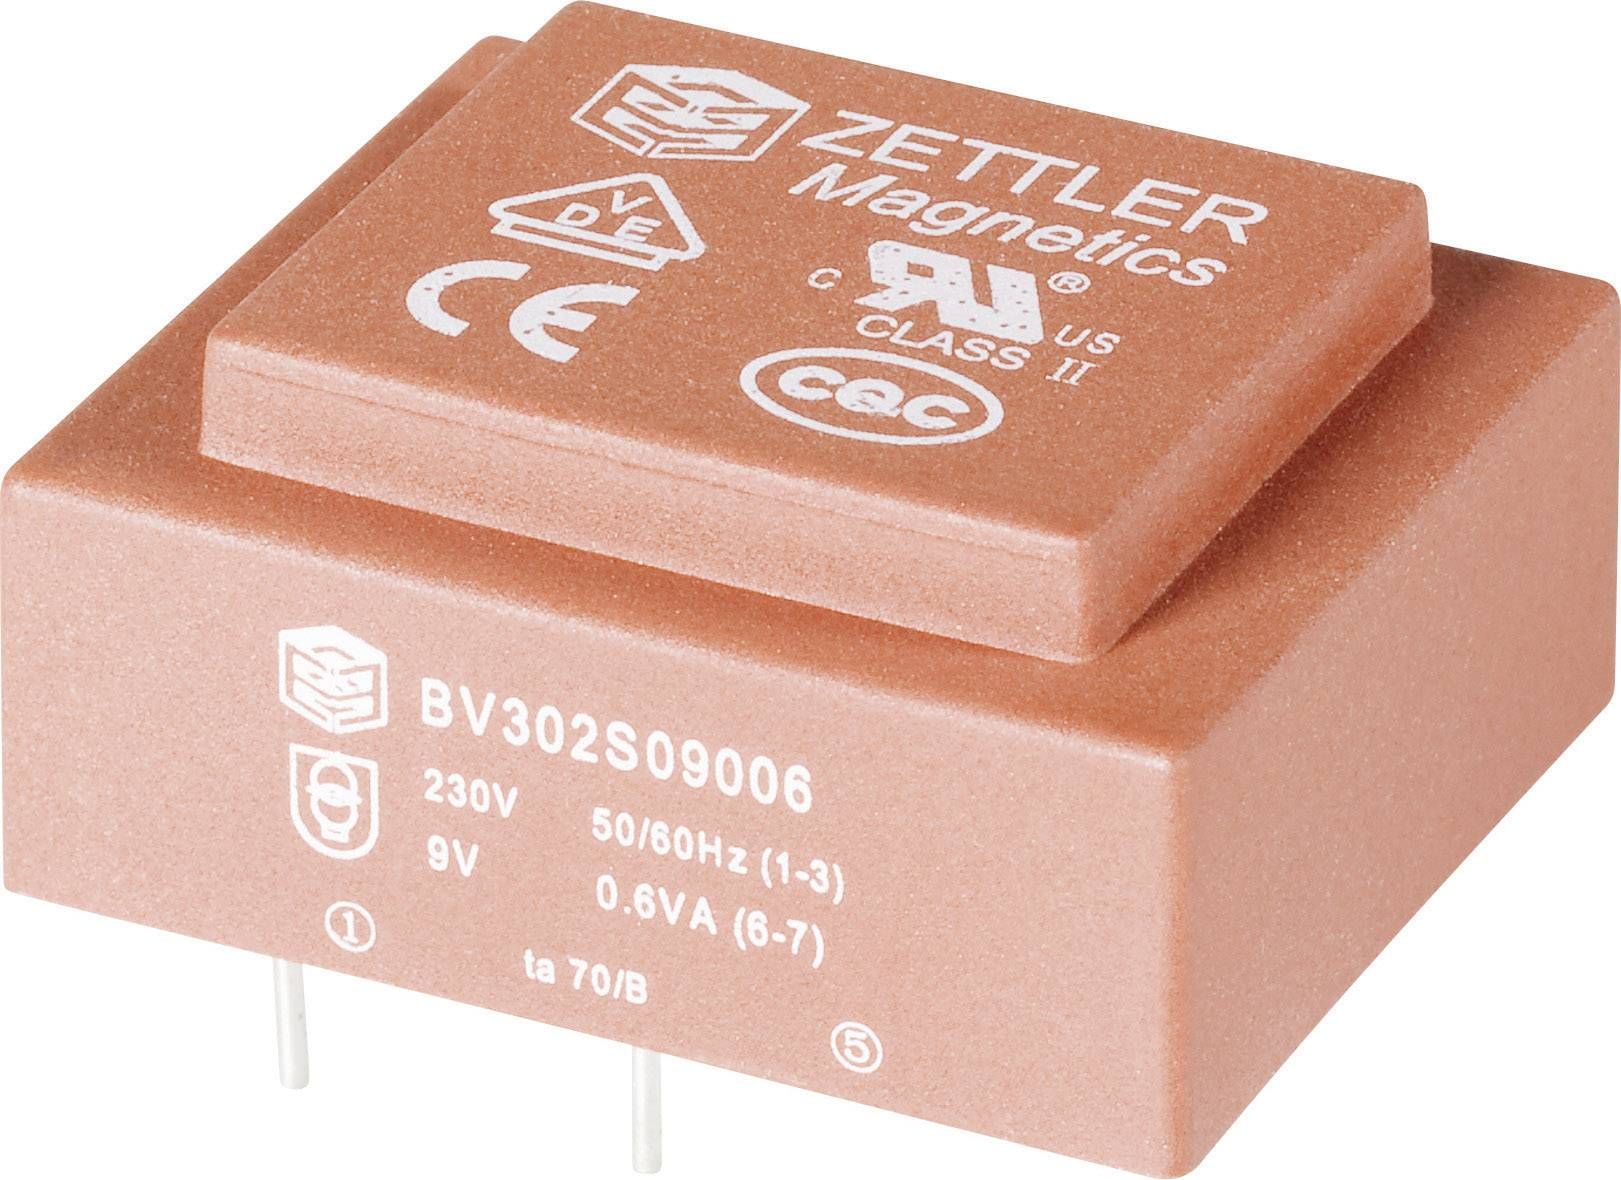 Transformátor do DPS Zettler Magnetics El30, 230 V/9 V, 66 mA, 2 VA